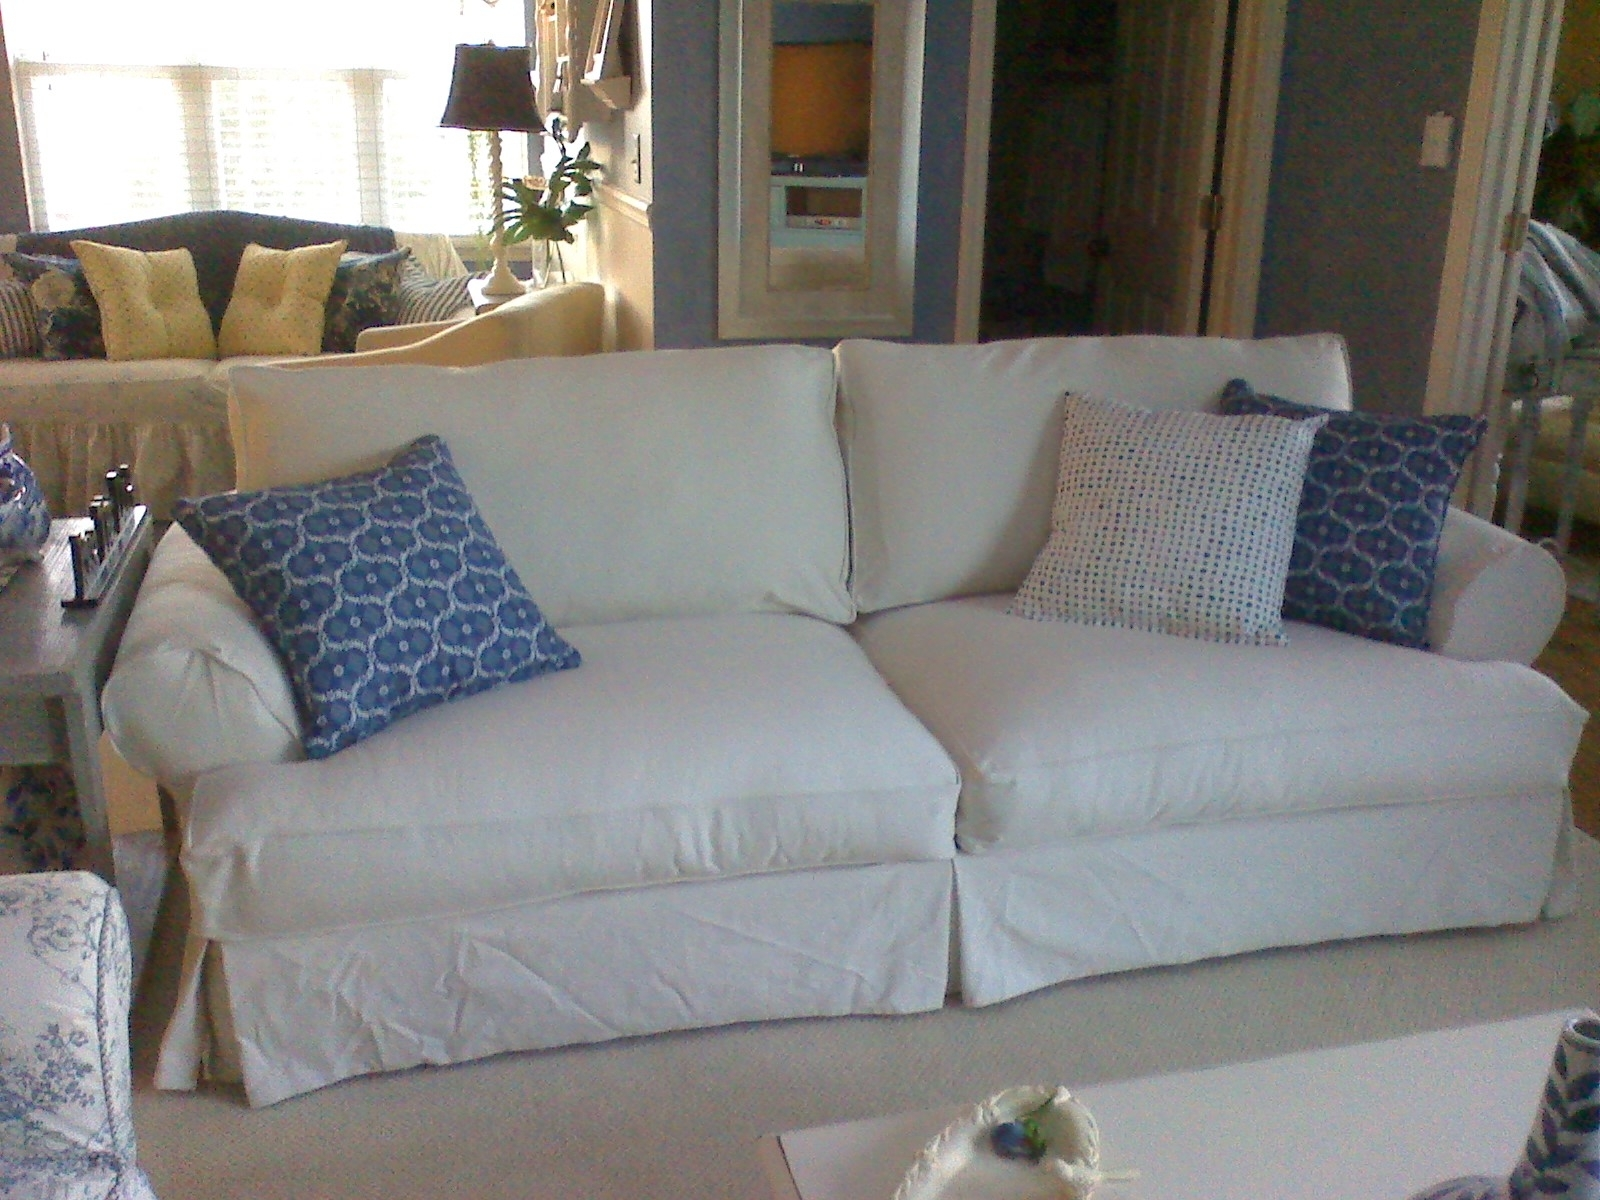 Replacement Slipcover Outlet Replacement Slipcovers For Famous Inside Widely Used Slipcovers Sofas (View 4 of 20)